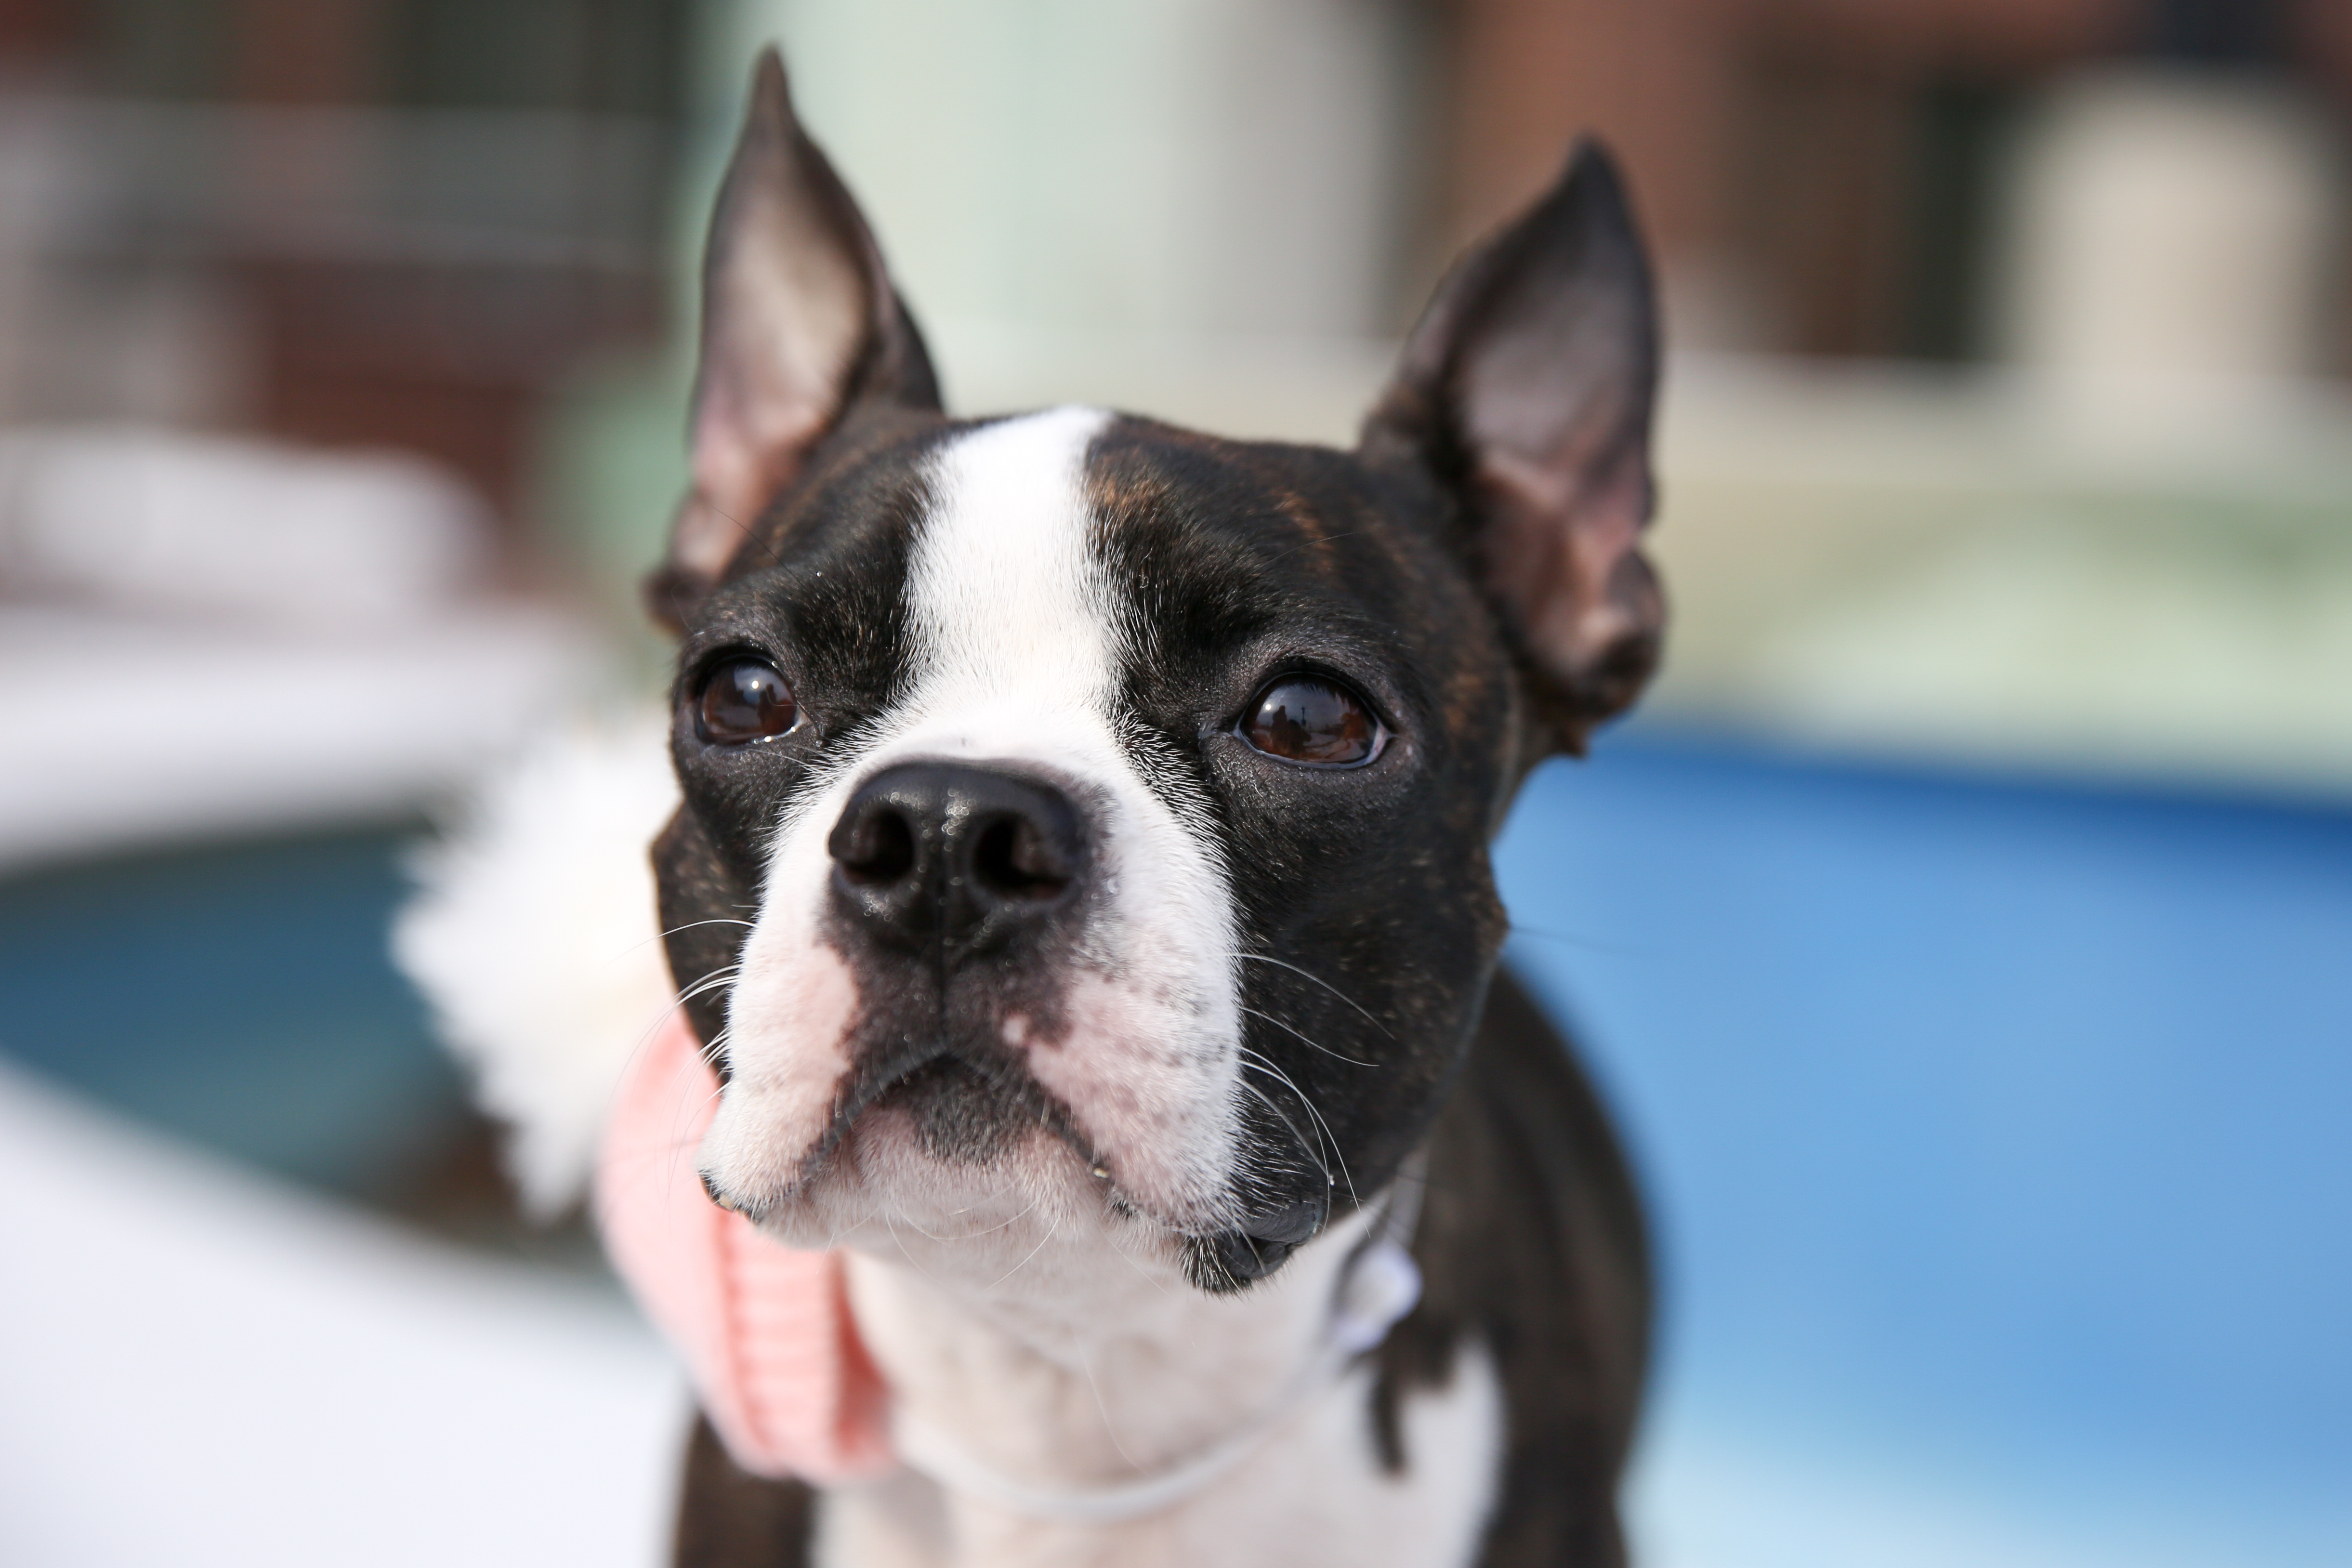 Meet Madeleine, a (almost) four-year-old Boston Terrier, who came to her mom from a farm in West Virginia when she was two months old! Maddie absolutely loves to sunbathe, eat fruits and veggies (her favs include broccoli and mangoes), cuddle and lick your face and she loves children more than other dogs or big humans. She's not the biggest fan of ear cleaning, the vacuum, squirrels or staying up past her bedtime -- don't mess with this feisty lady's beauty sleep! Oh and did we mention she responds to commands in both and Spanish?? Yep, this babe is bilingual! You can follow all of Madeleine's adventures on her Instagram, @theladymadeleine. If you or someone you know has a pet you'd like featured, email us at dcrefined@gmail.com or tag #DCRUFFined and your furbaby could be the next spotlighted! (Image: Amanda Andrade-Rhoades/ DC Refined